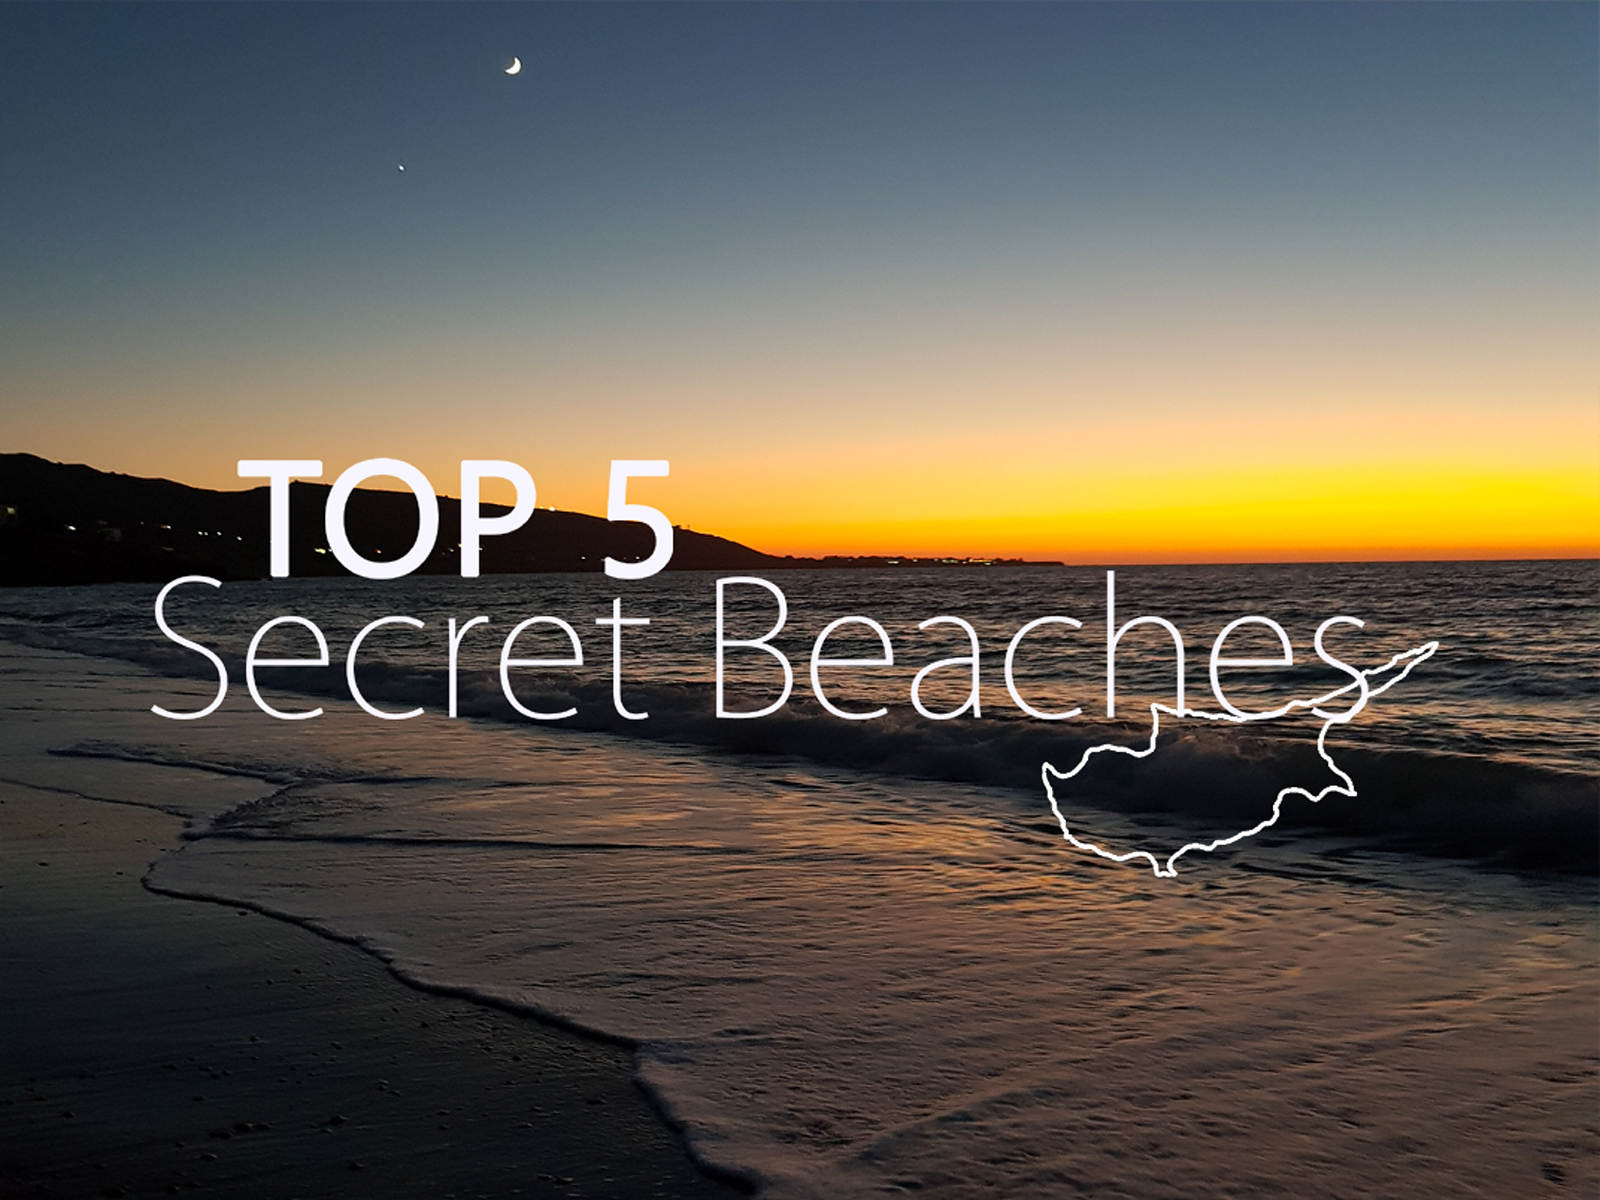 OUR TOP 5 SECRET BEACHES